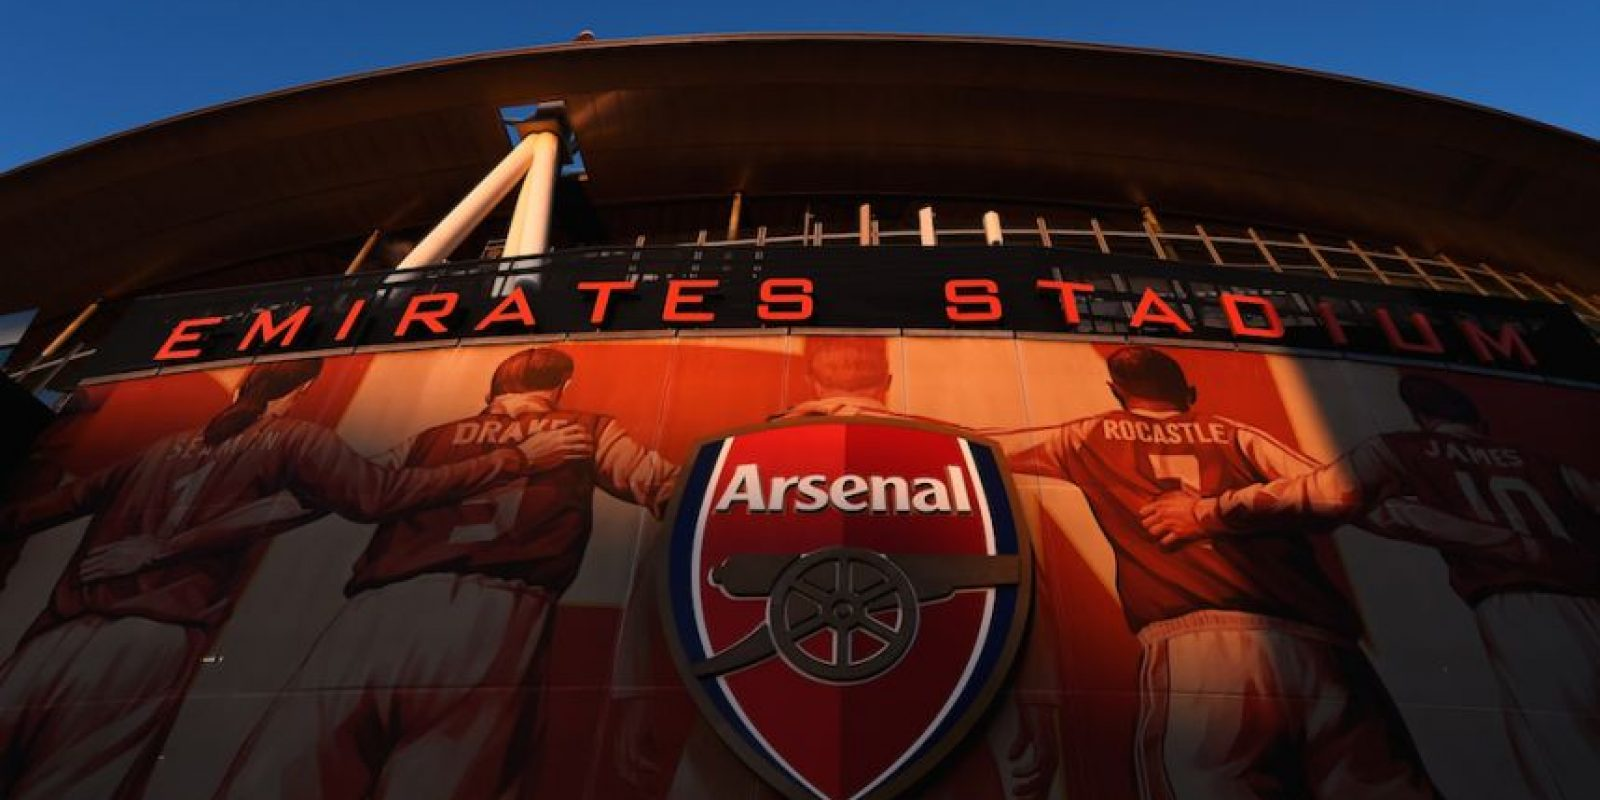 Emirates Stadium – Londres, Inglaterra. Foto: Getty Images